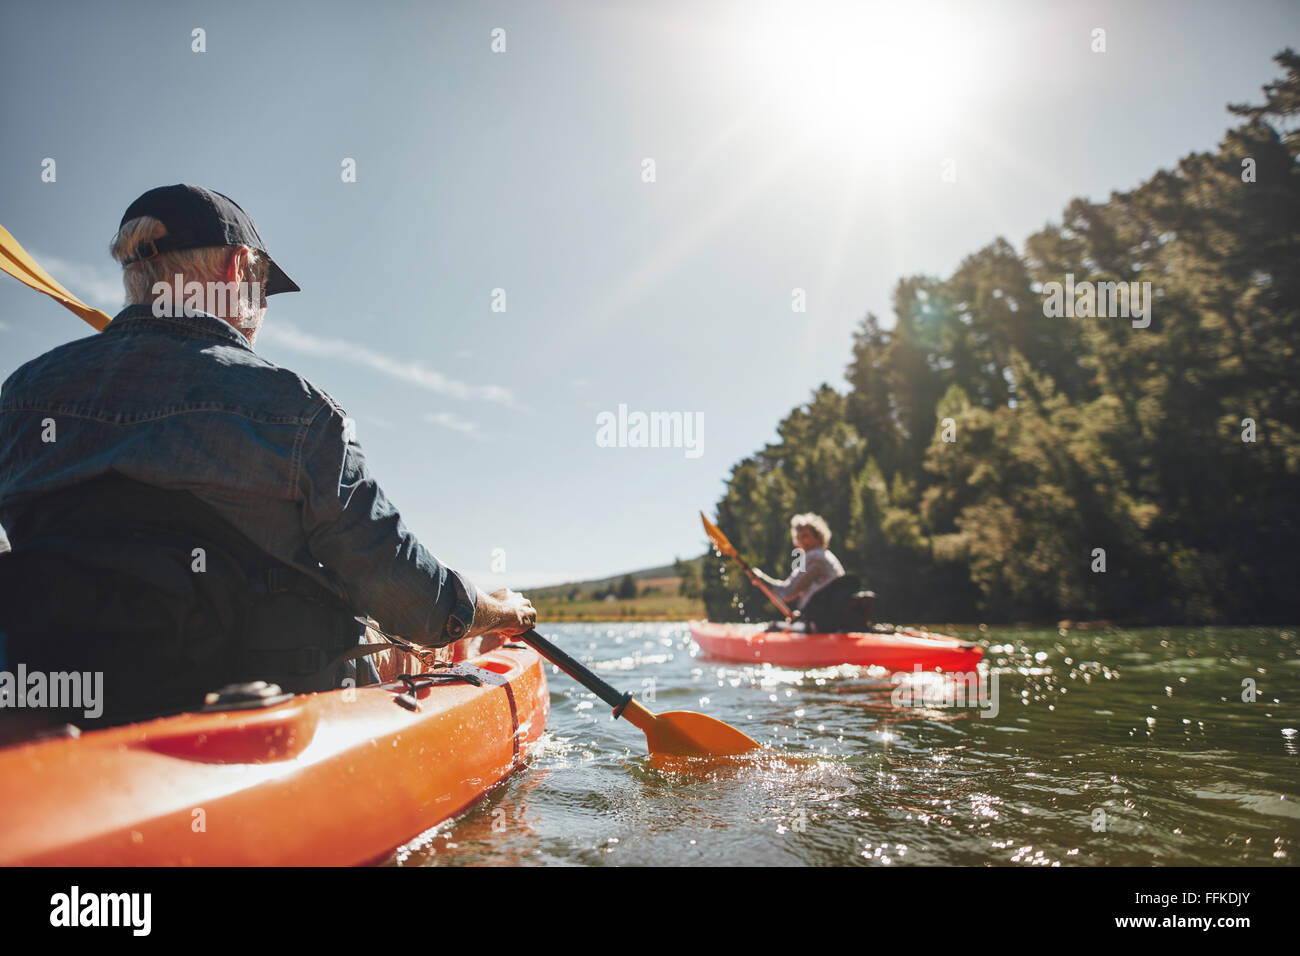 Image of senior couple canoeing in the lake on a sunny day. Kayakers in the lake paddling. - Stock Image